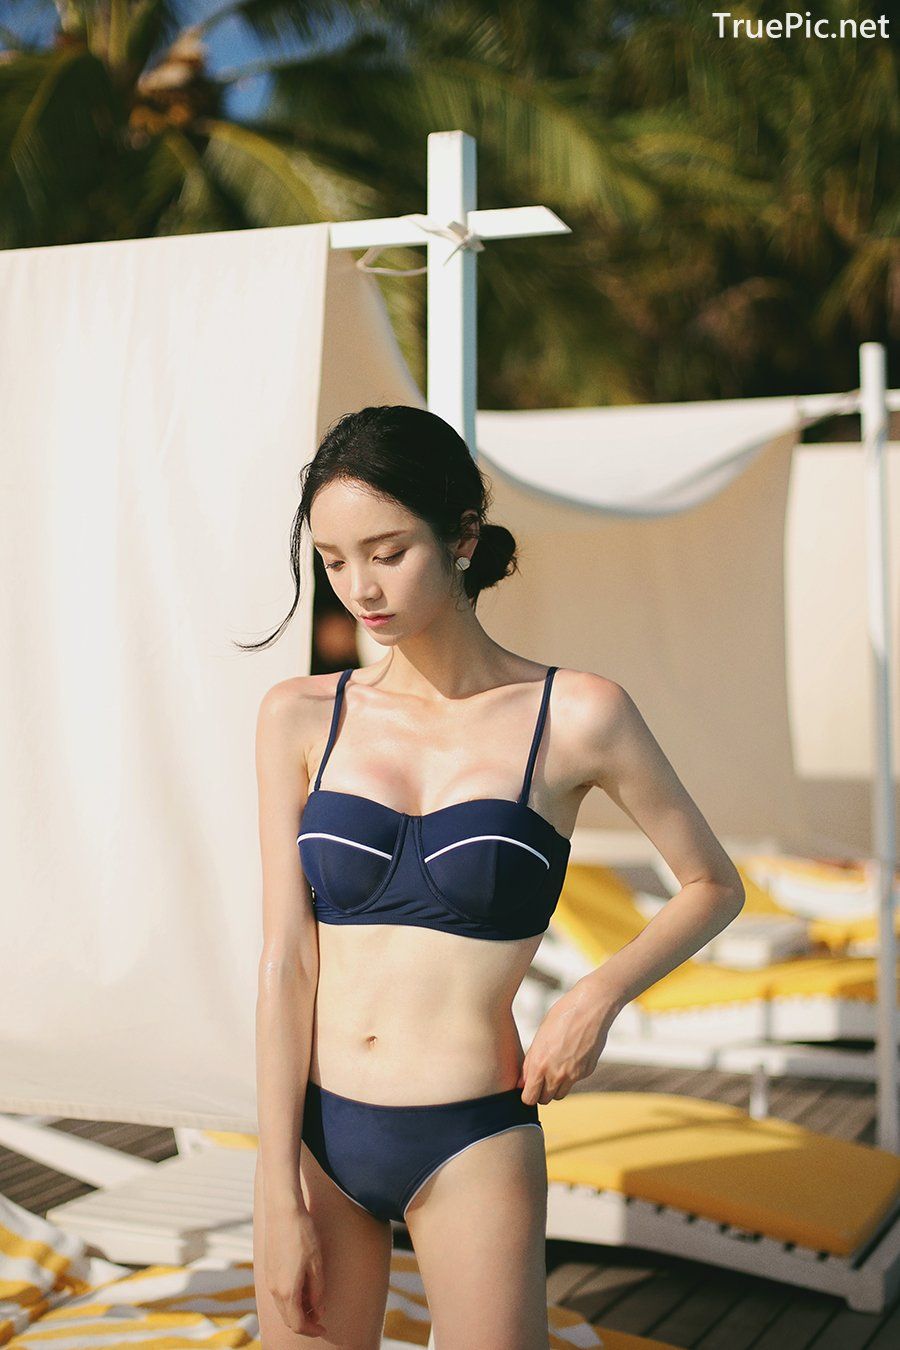 Image Korean Fashion Model - Jeong Hee - Bikini That Stained My Heart - TruePic.net - Picture-2